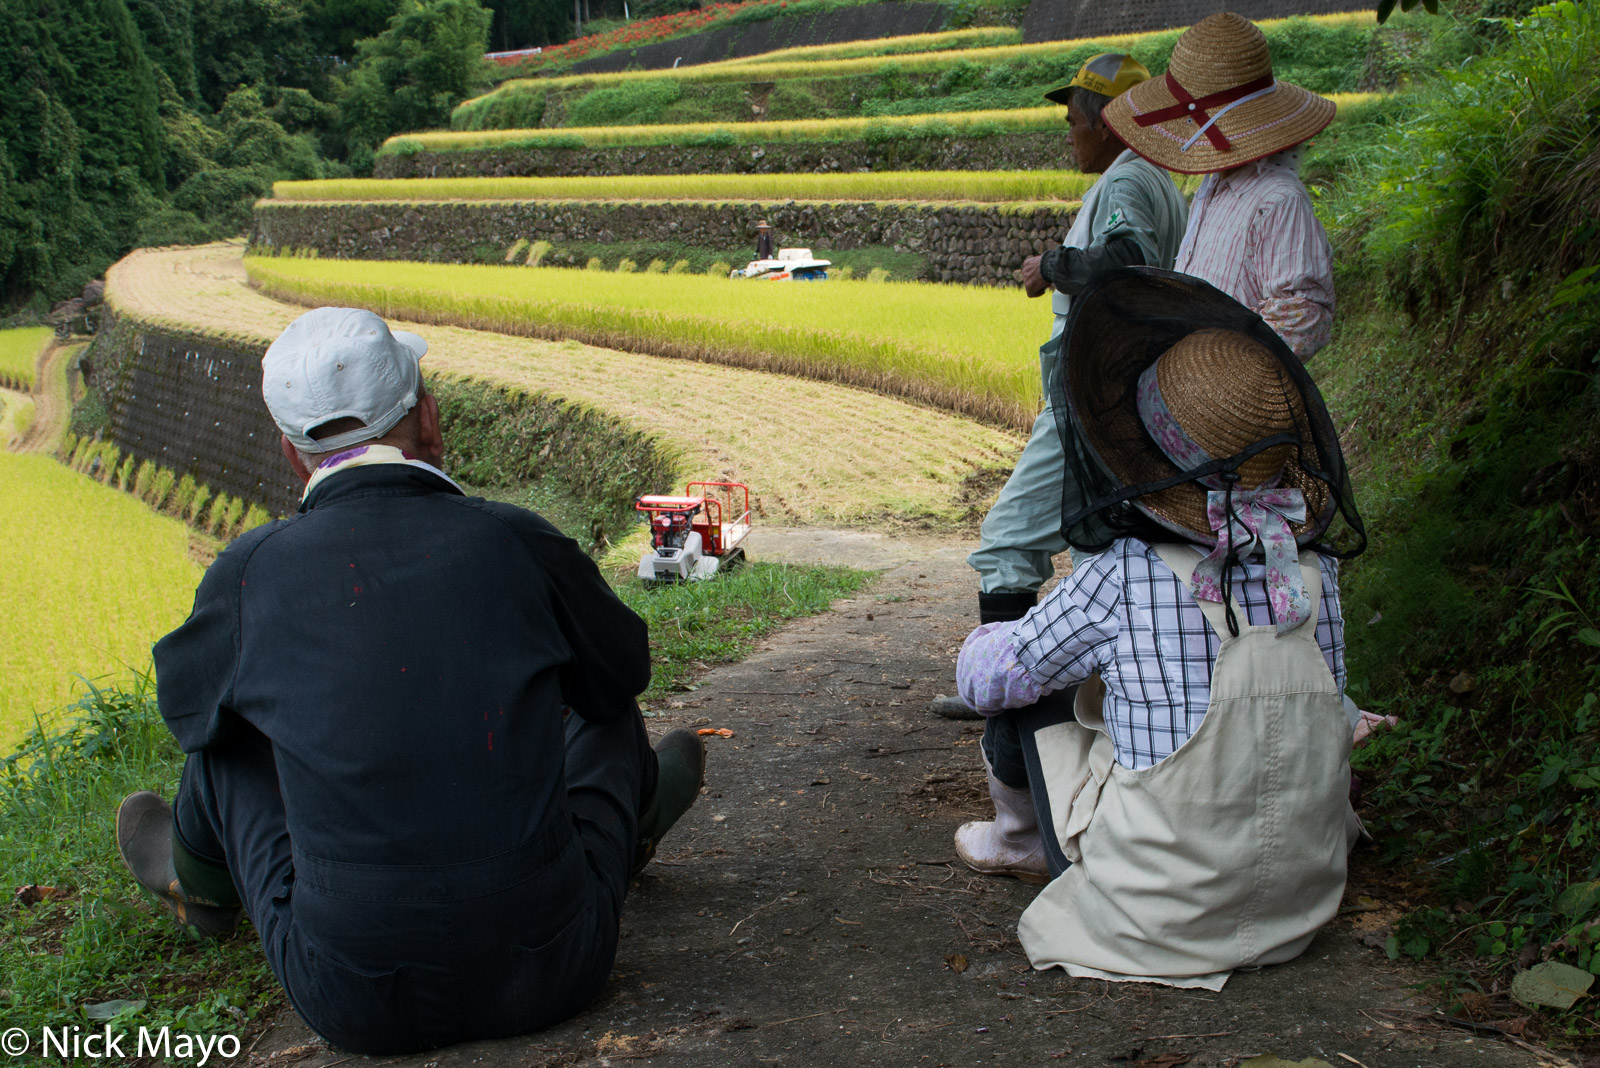 Farmers taking a break from harvesting paddy rice at Warabino.